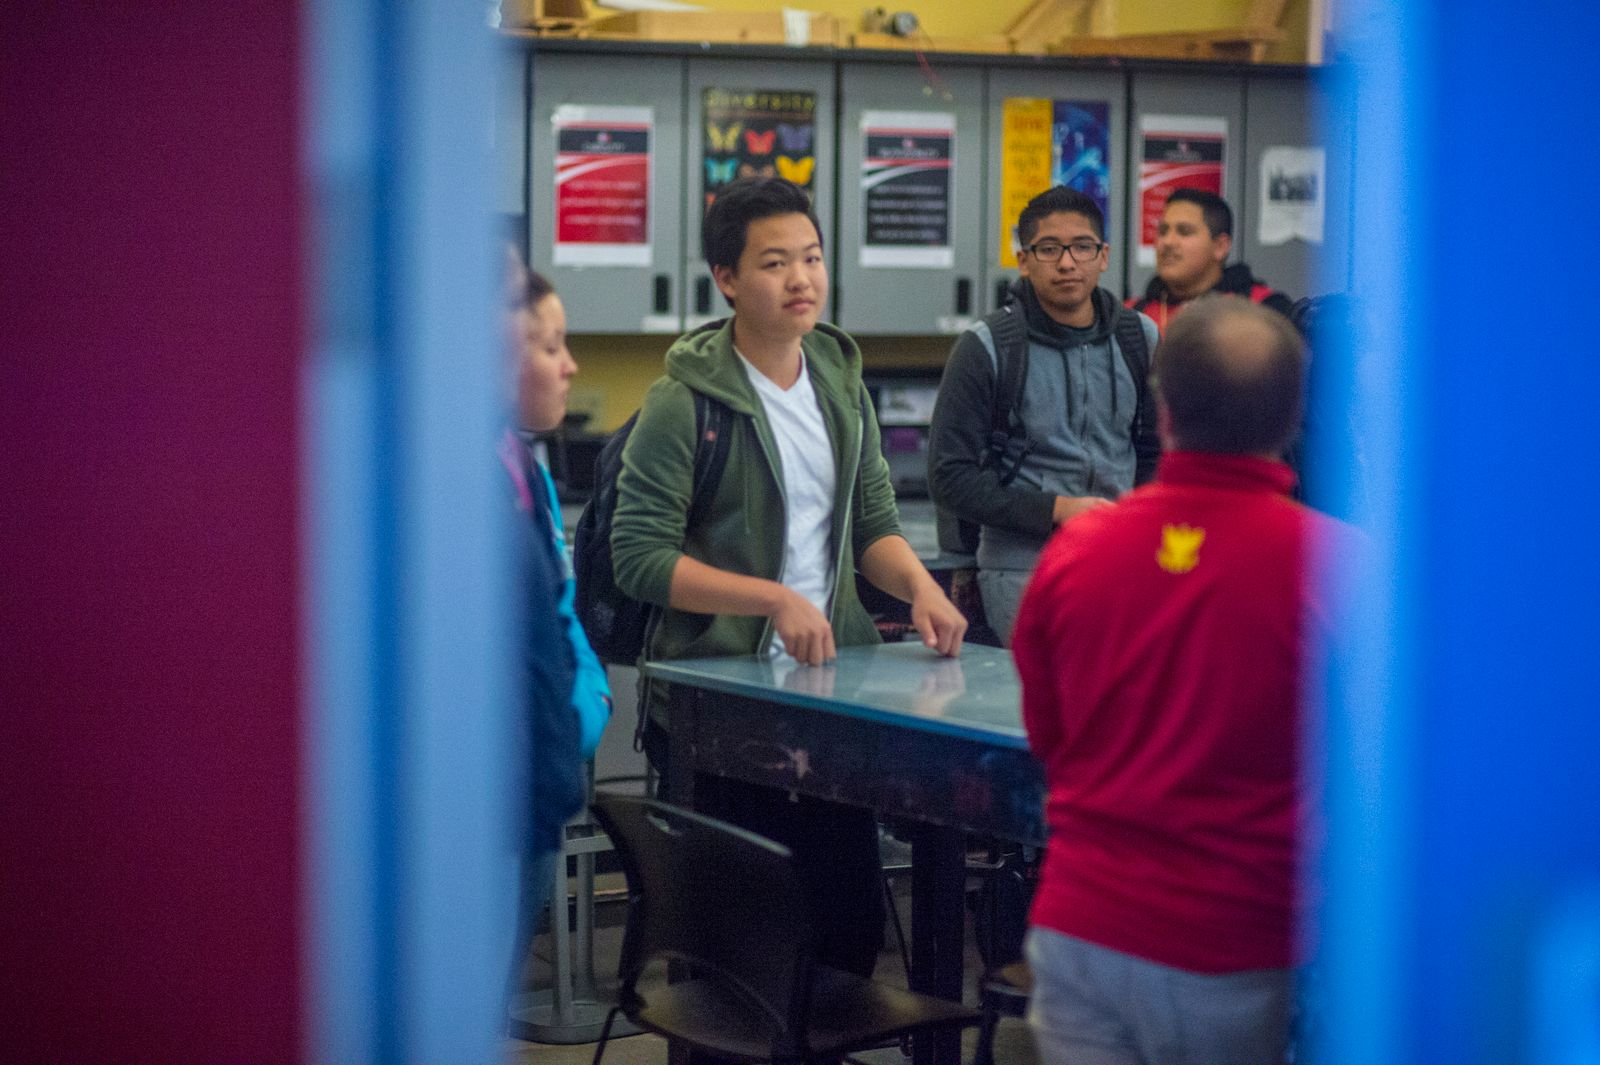 Four high school students stand around a table speaking with an older adult wearing a red jacket. They are seen through a blue doorframe.